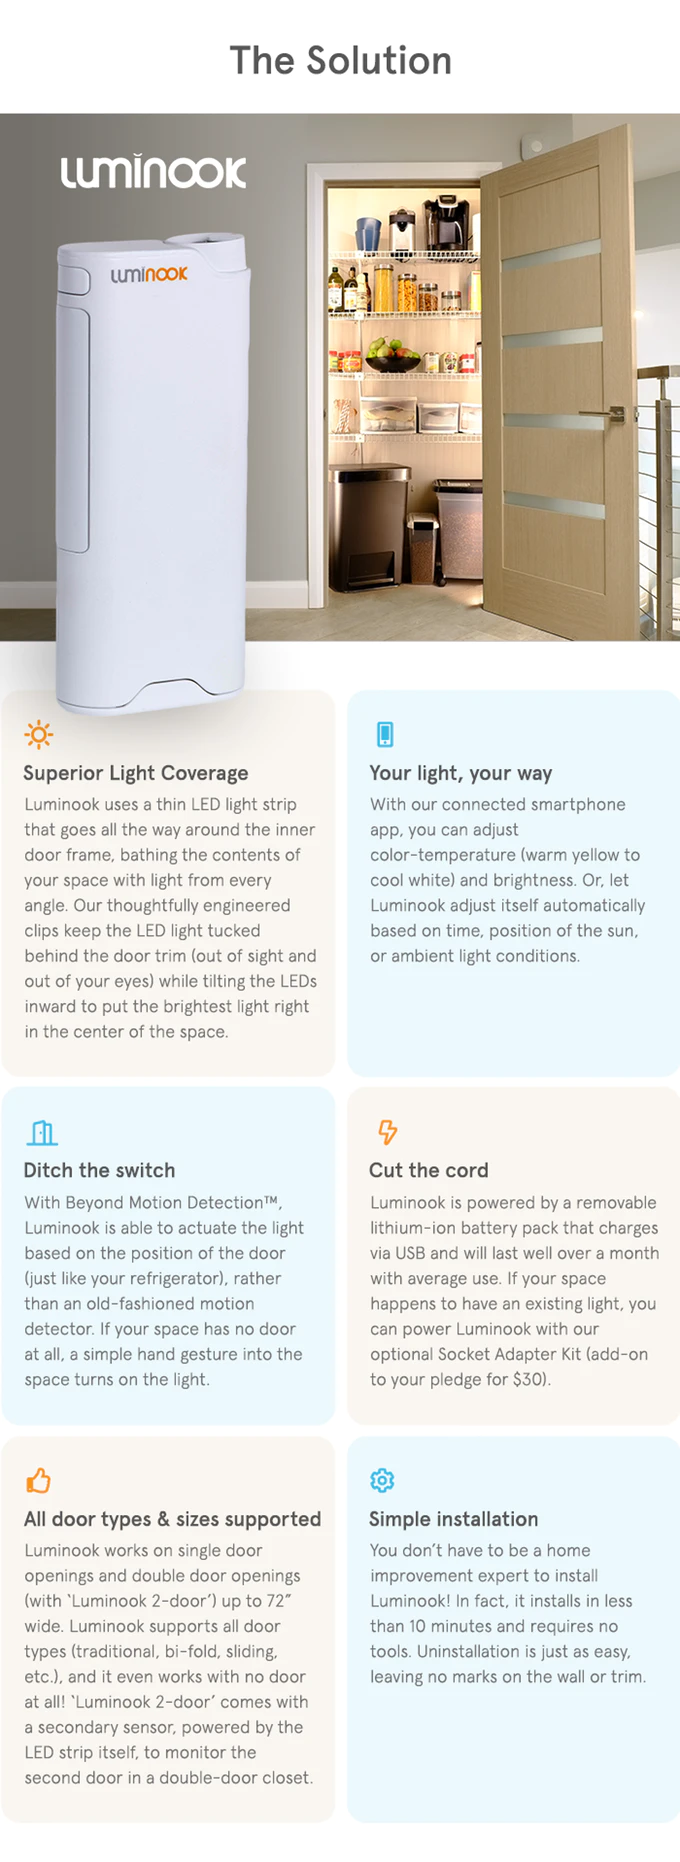 Luminook Big Light For Small Spaces By Luminook Kickstarter In 2020 Small Spaces Single Doors Led Light Strips